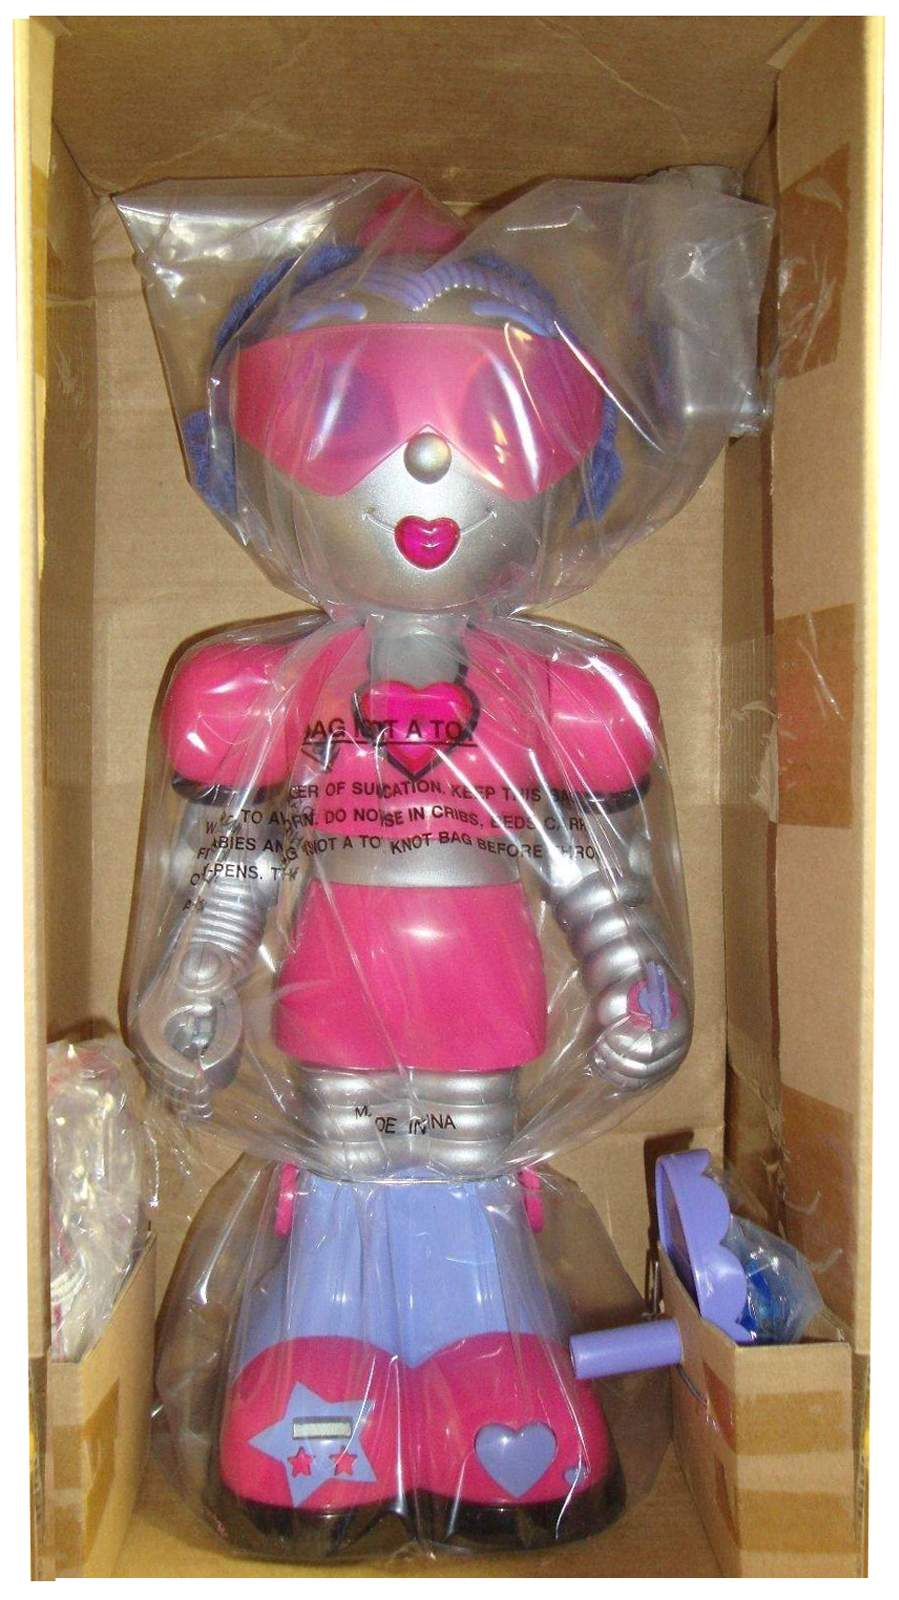 Bank Schwarz Girlbot Interactive Robotic Personal Assistant - The Old